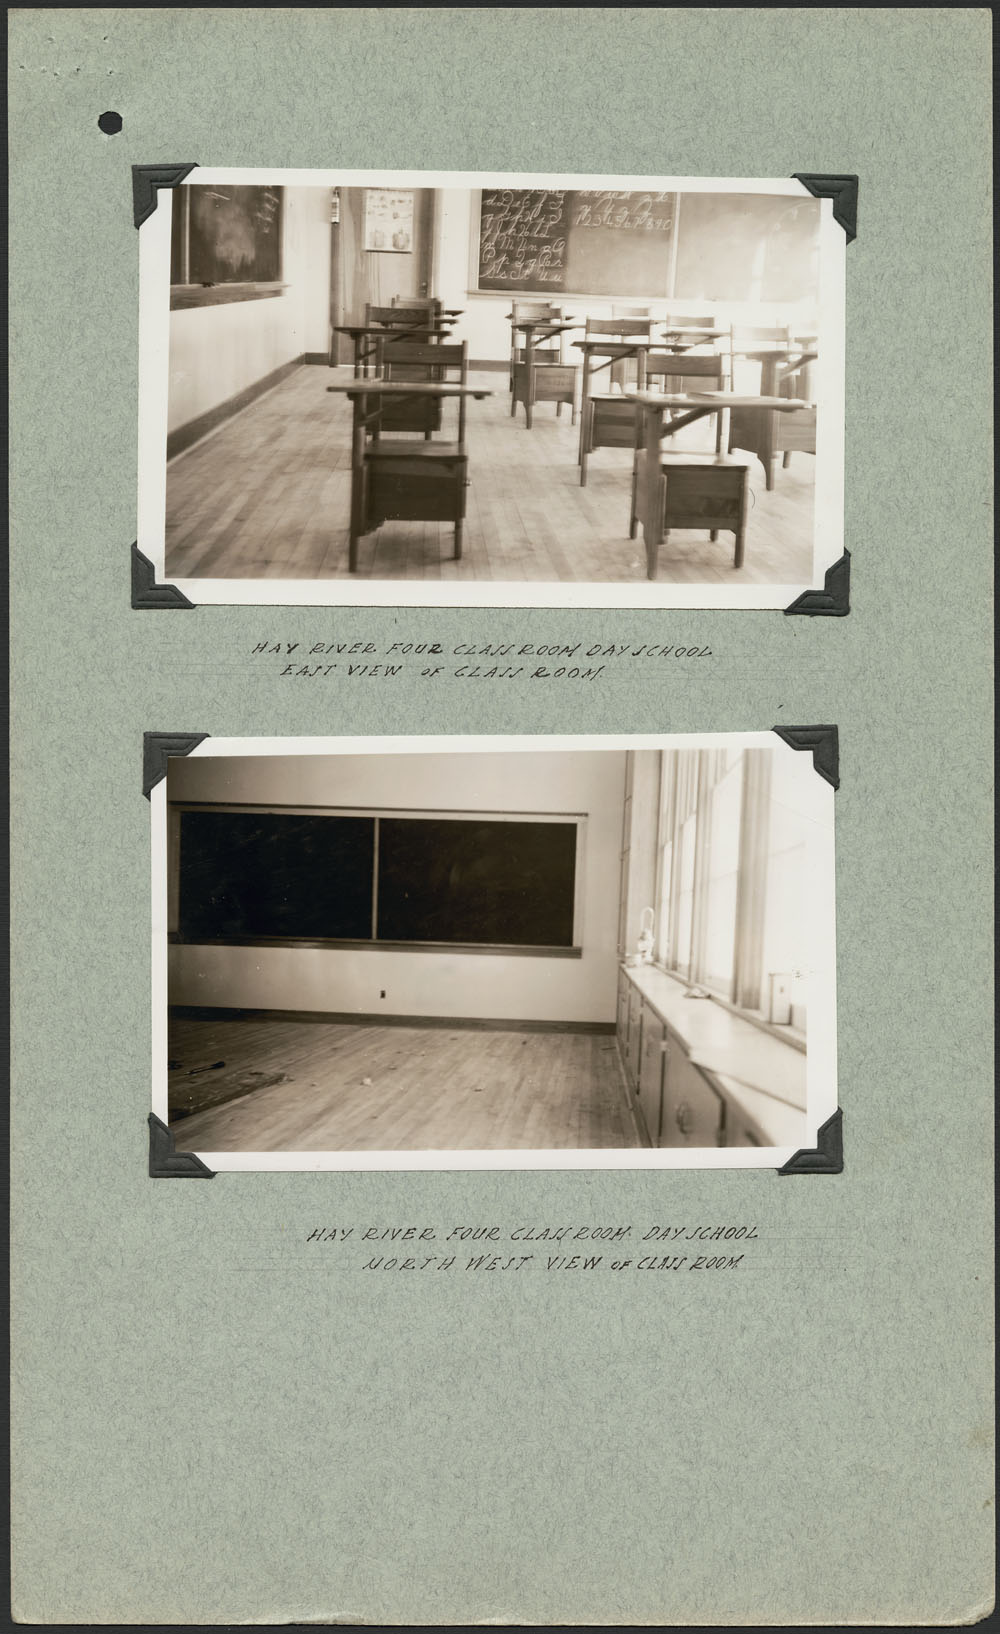 [Hay River] Federal Indian Day School, interior views of two classrooms, 1949